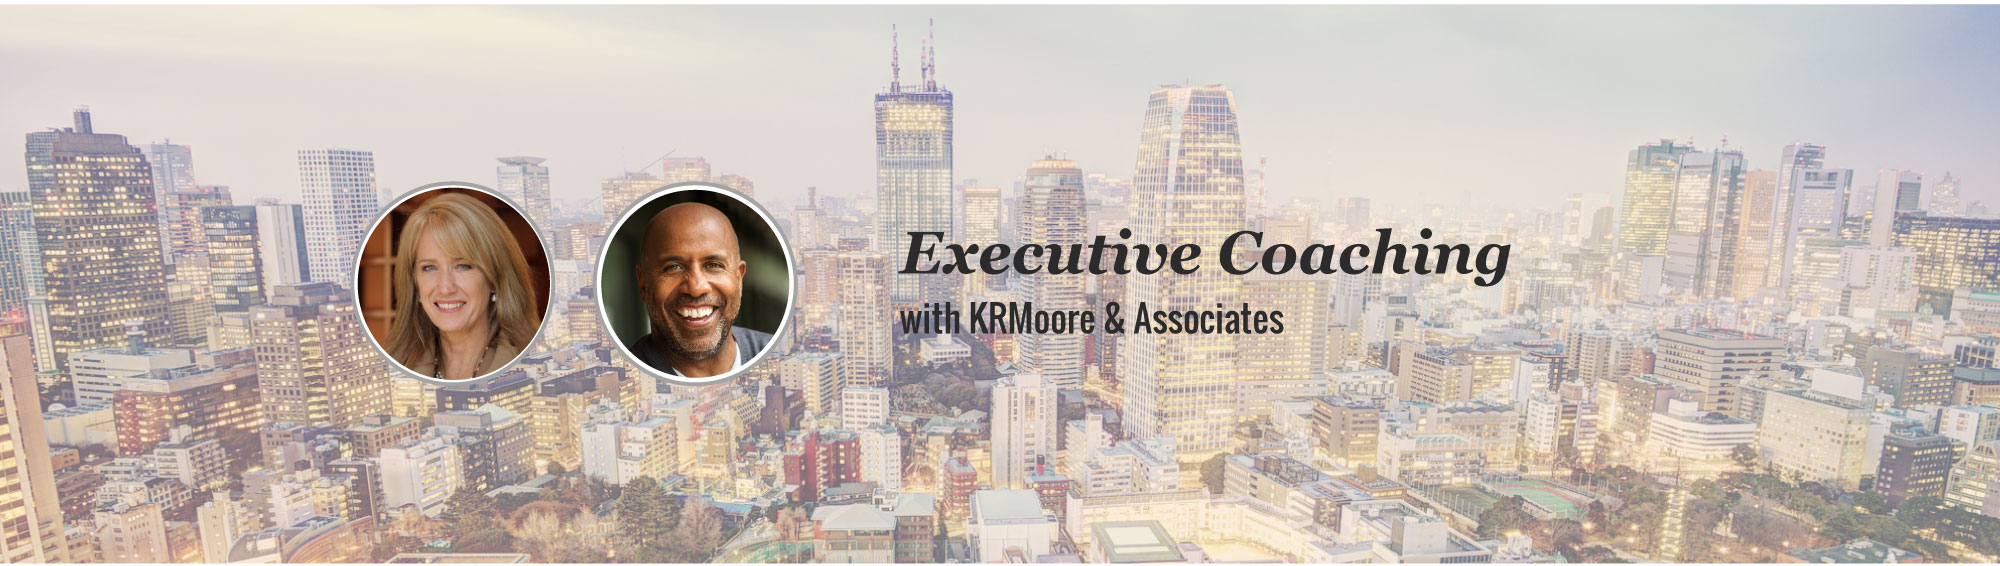 Executive Coaching with KRMoore & Associates, Texas